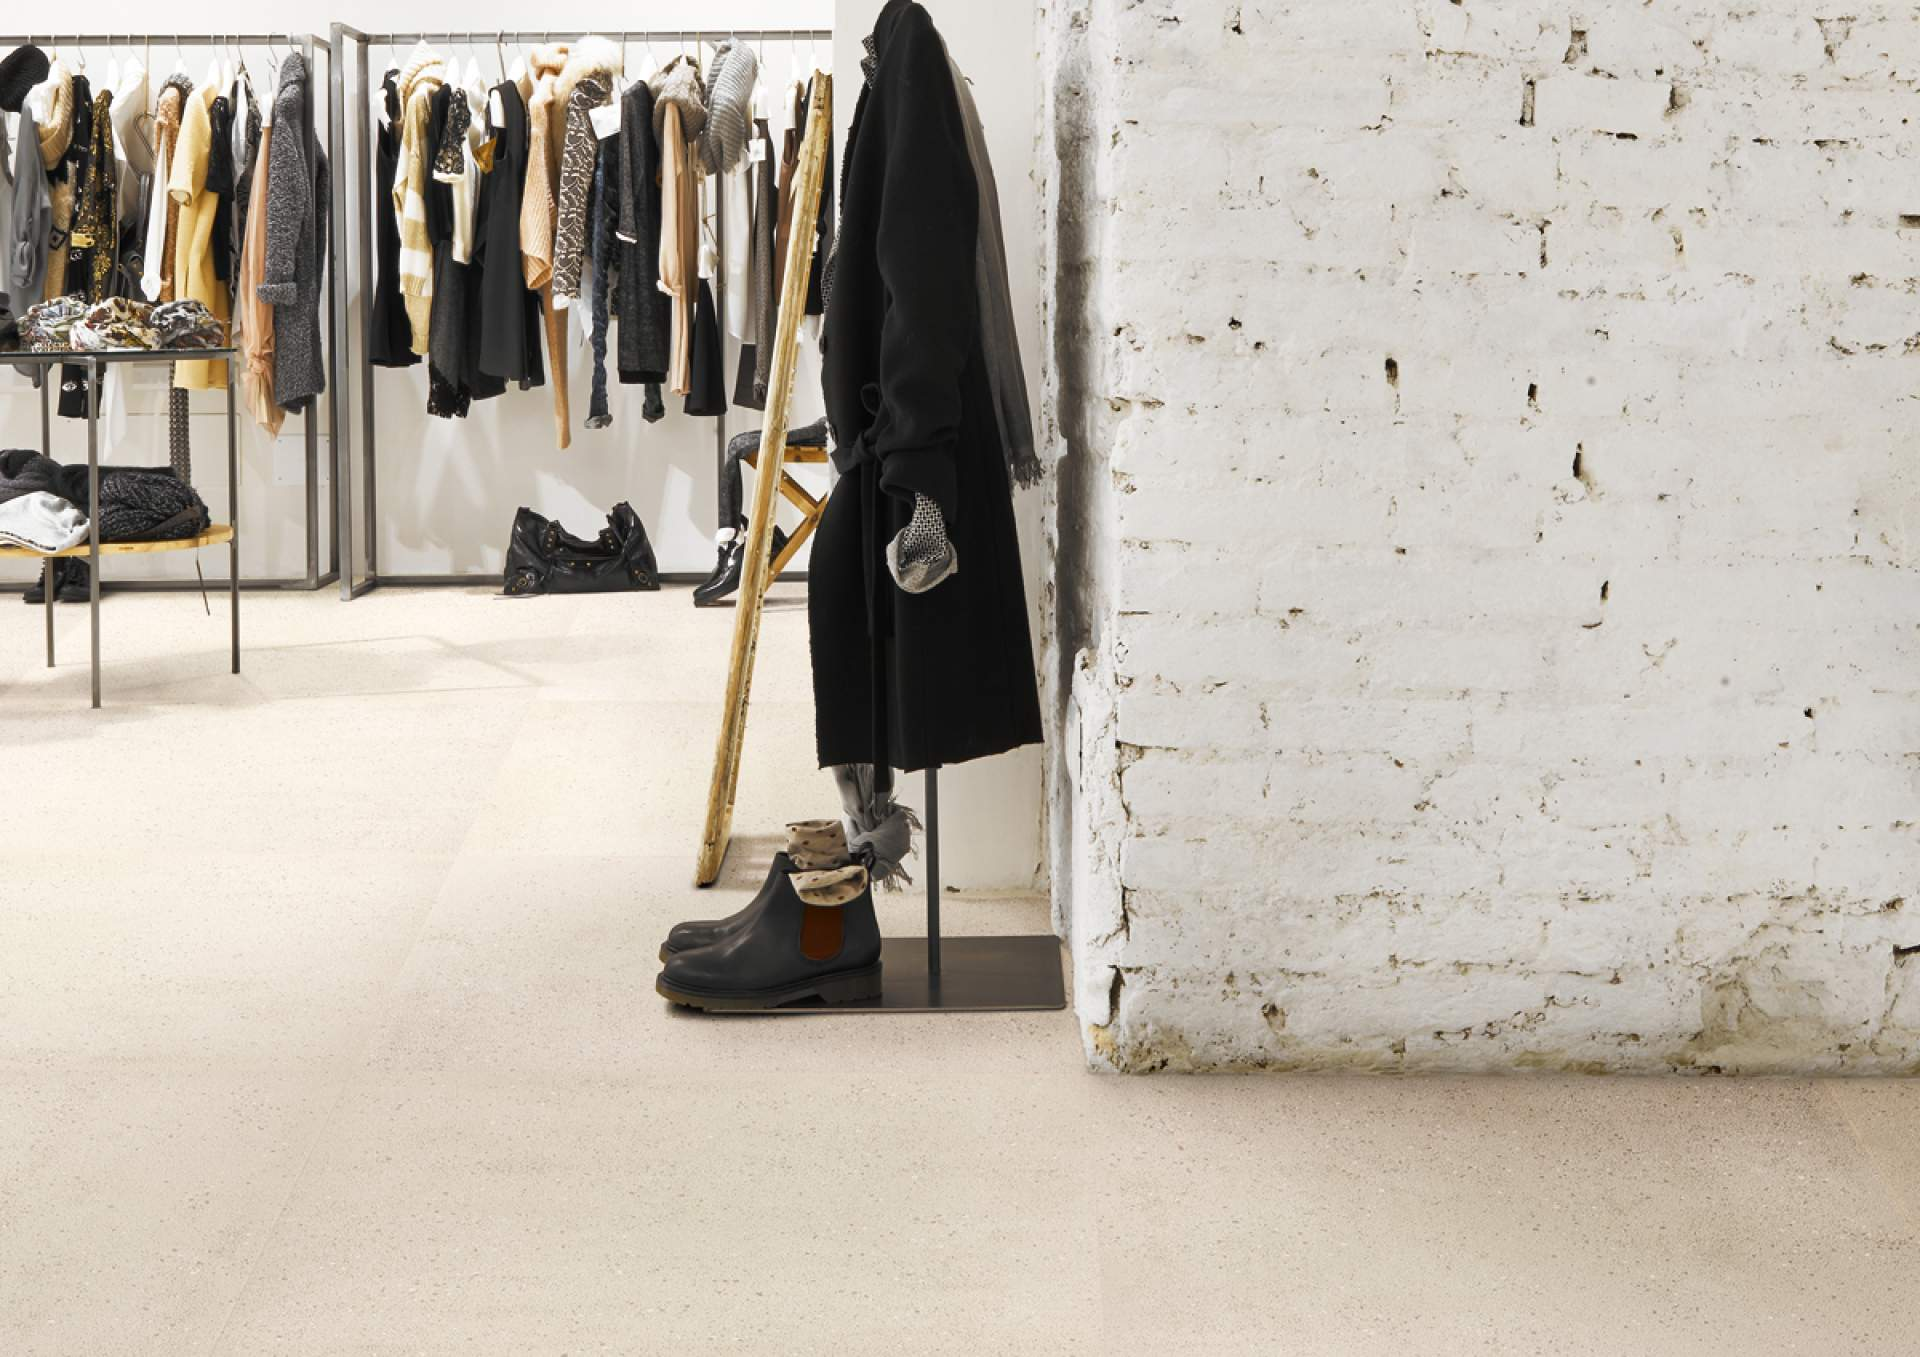 Technical Concrete shop setting with Beige Tile